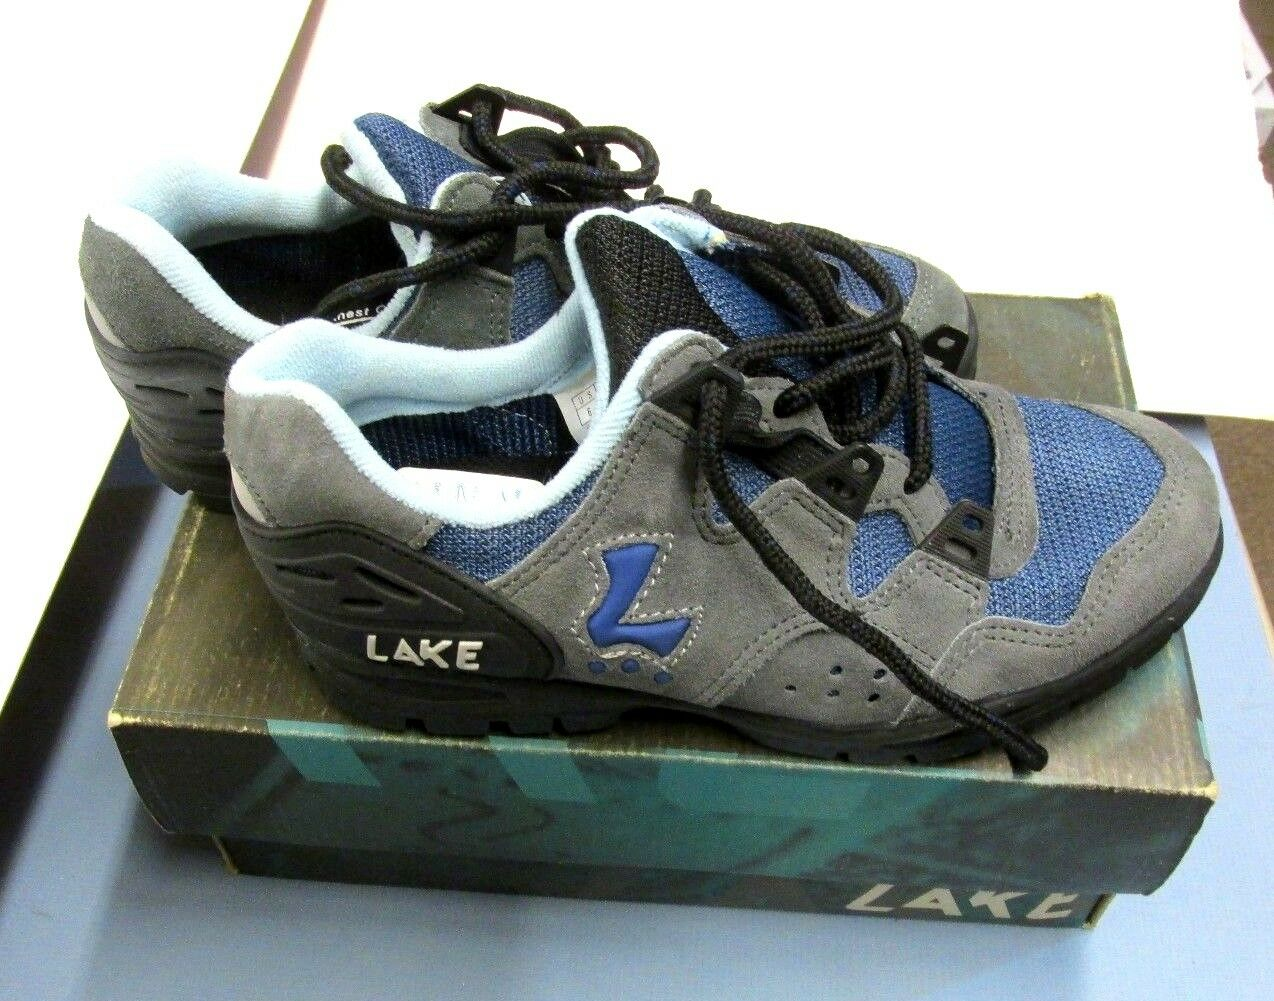 LAKE MX 100 CYCLING MOUNTAIN SHOES WOMEN'S blueE  GREY US SIZE 6 NEW ()  online shopping and fashion store